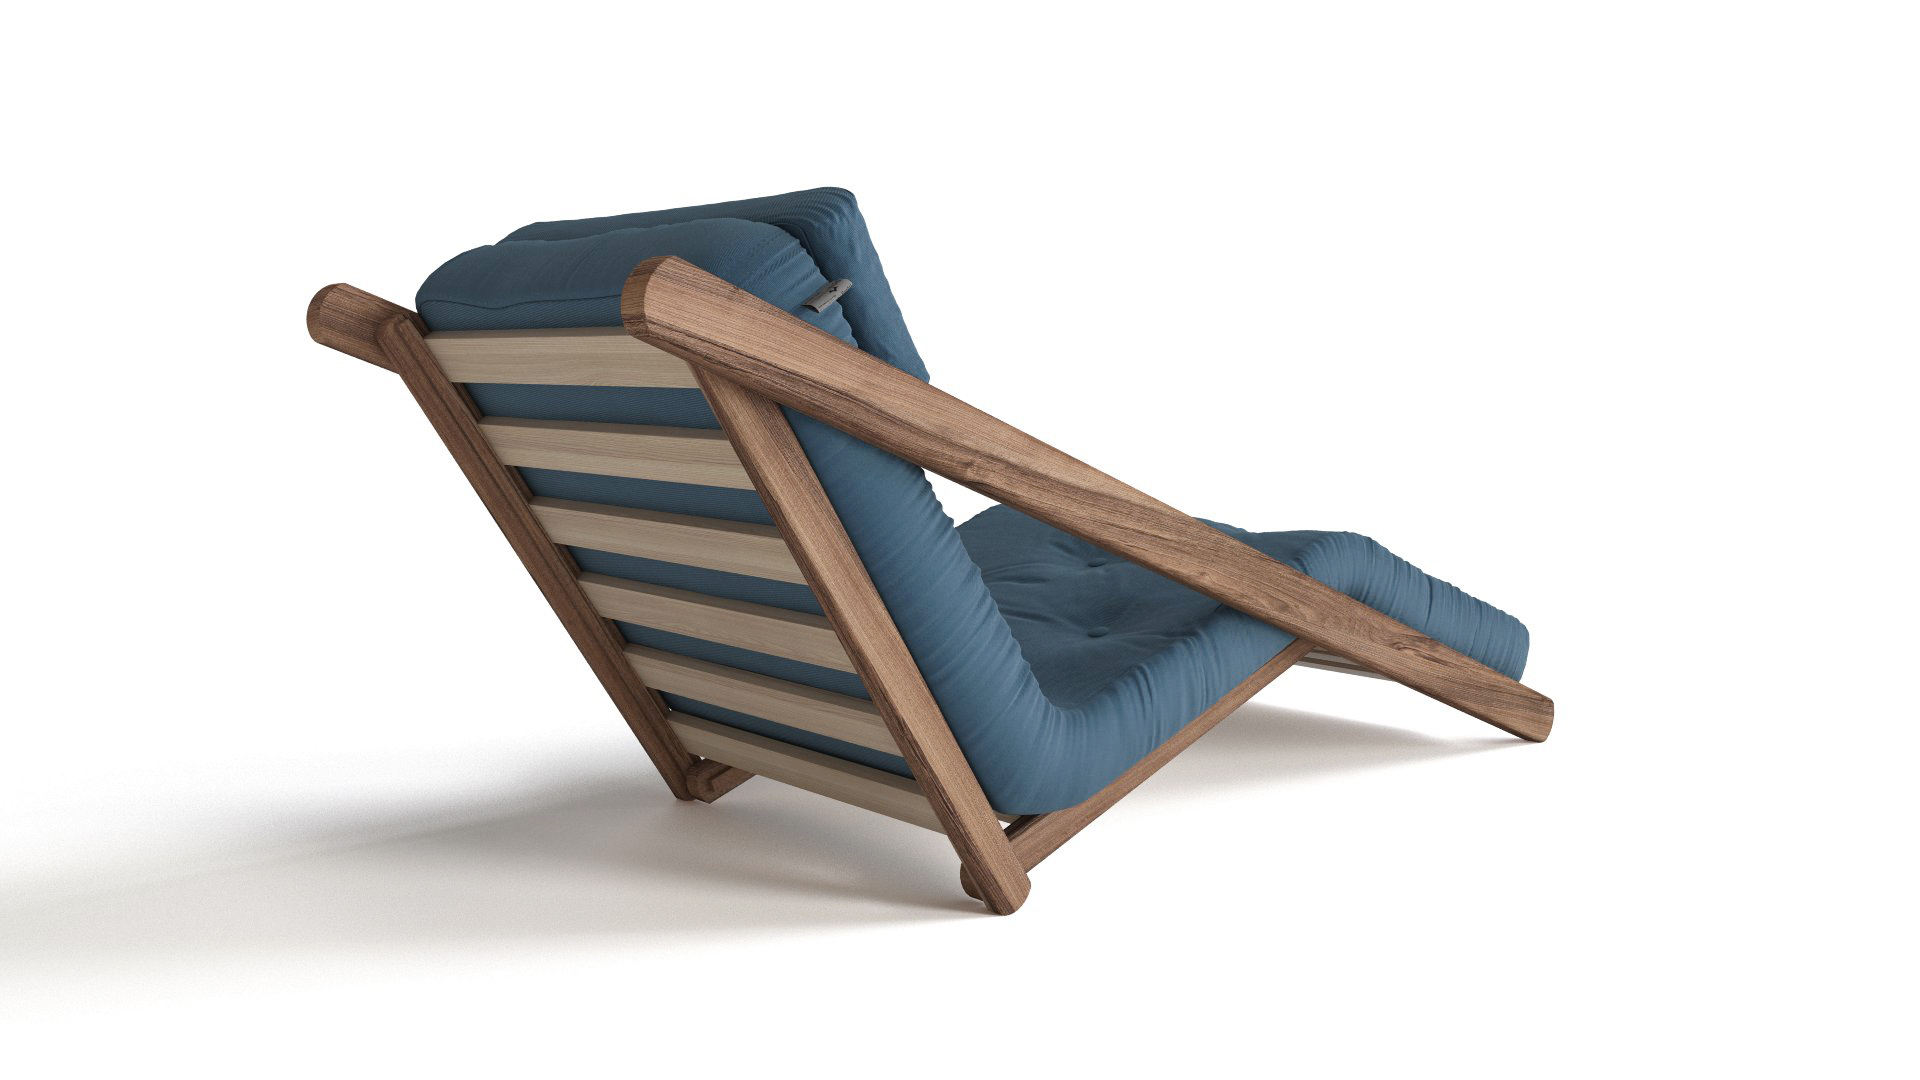 Figo futon lounger flyingarchitecture for Meuble japonais futon